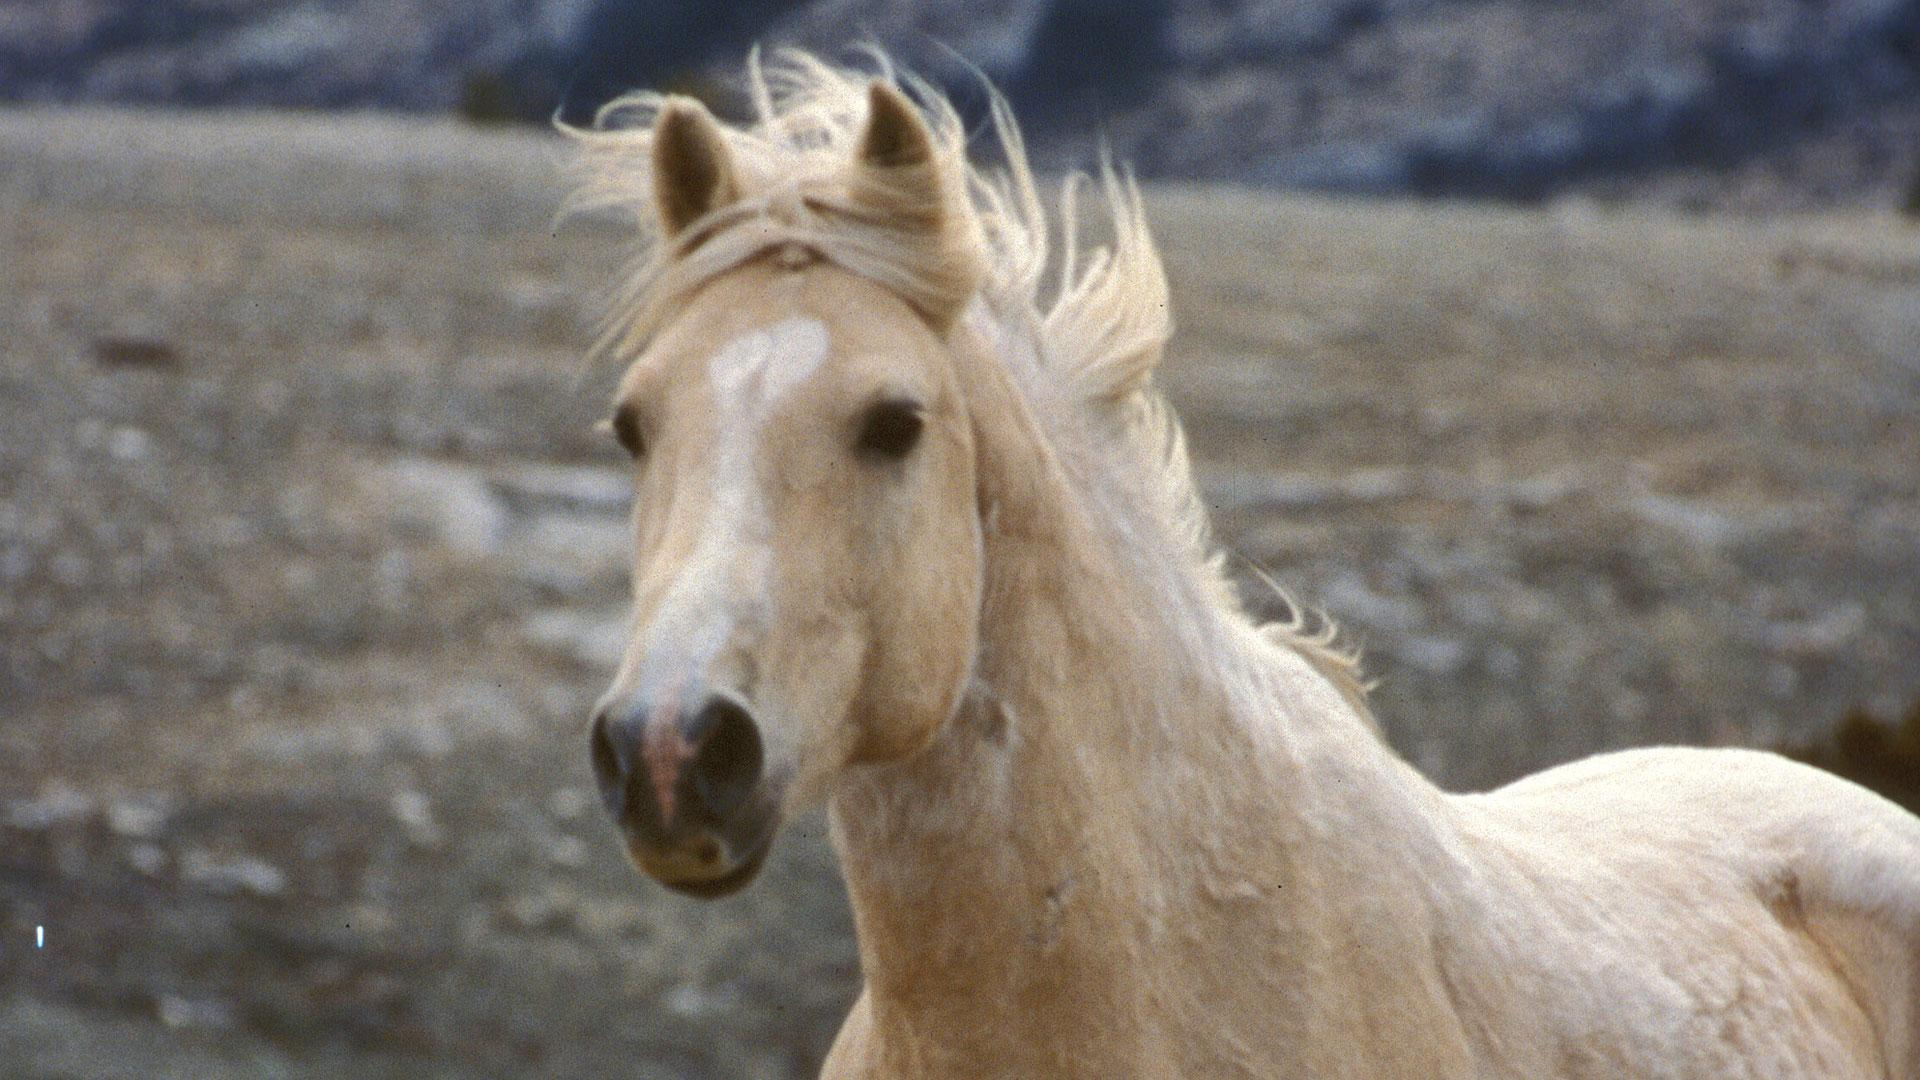 Cloud S Legacy The Wild Stallion Returns Wild Horse Roundups Why Are They Conducted Nature Pbs